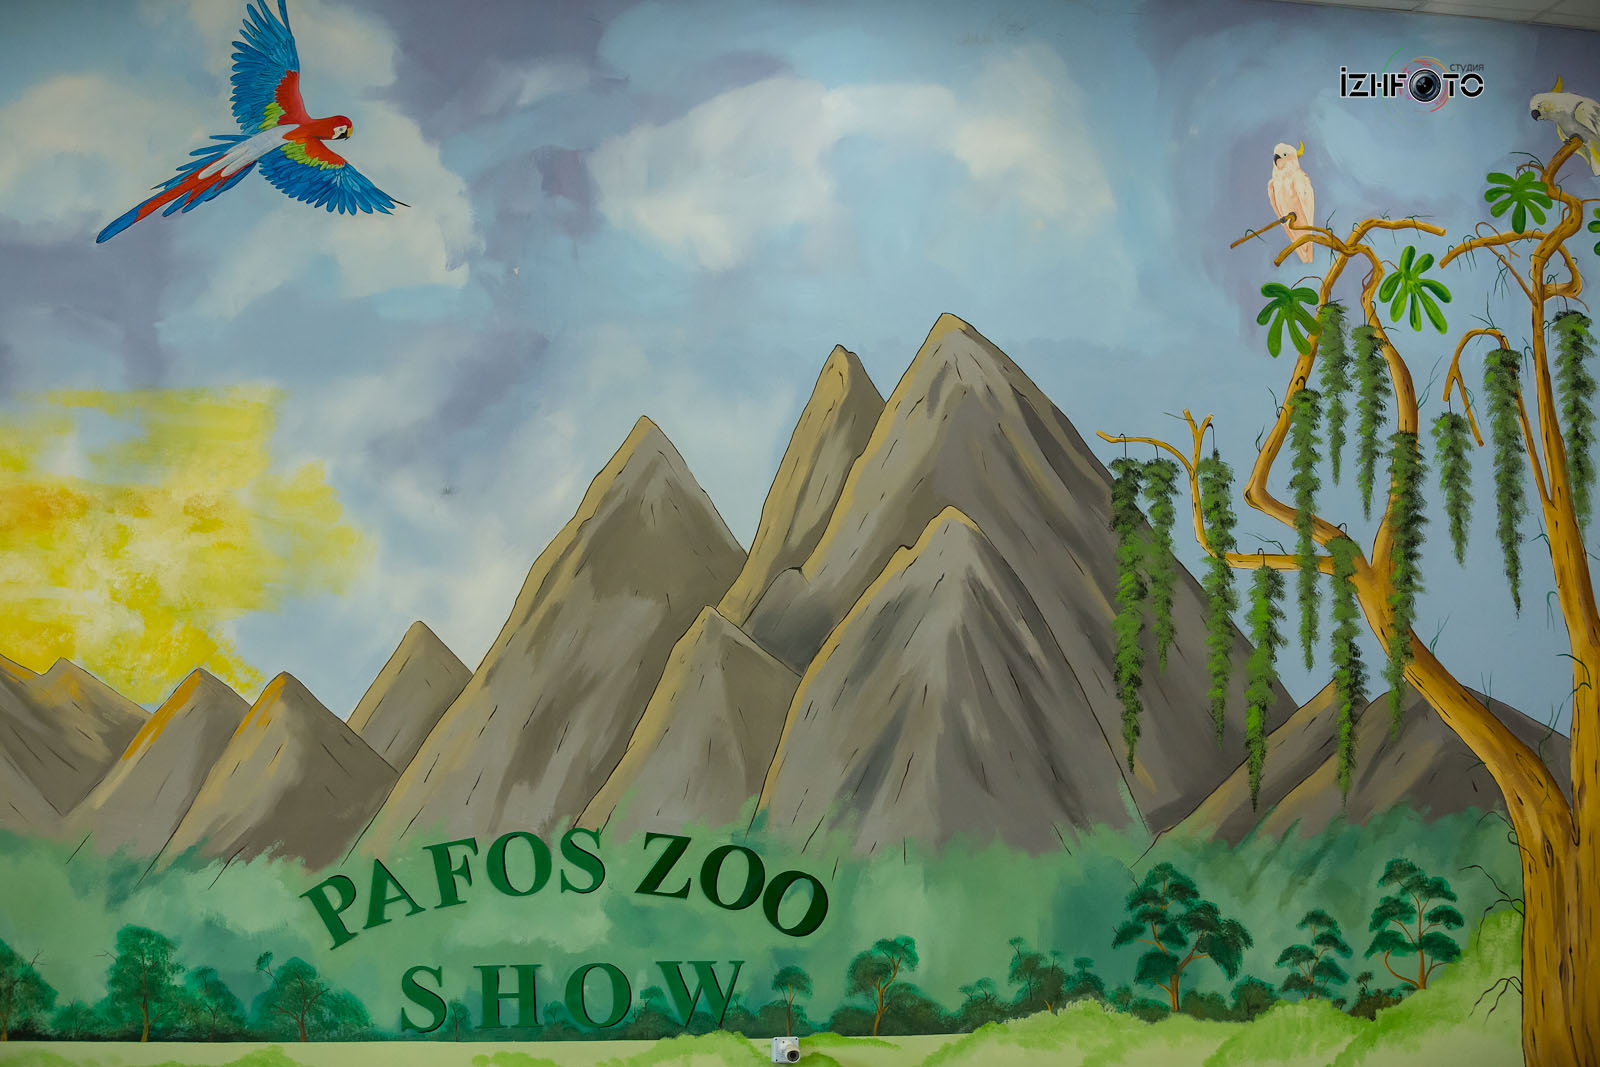 Pafos Zoo Show